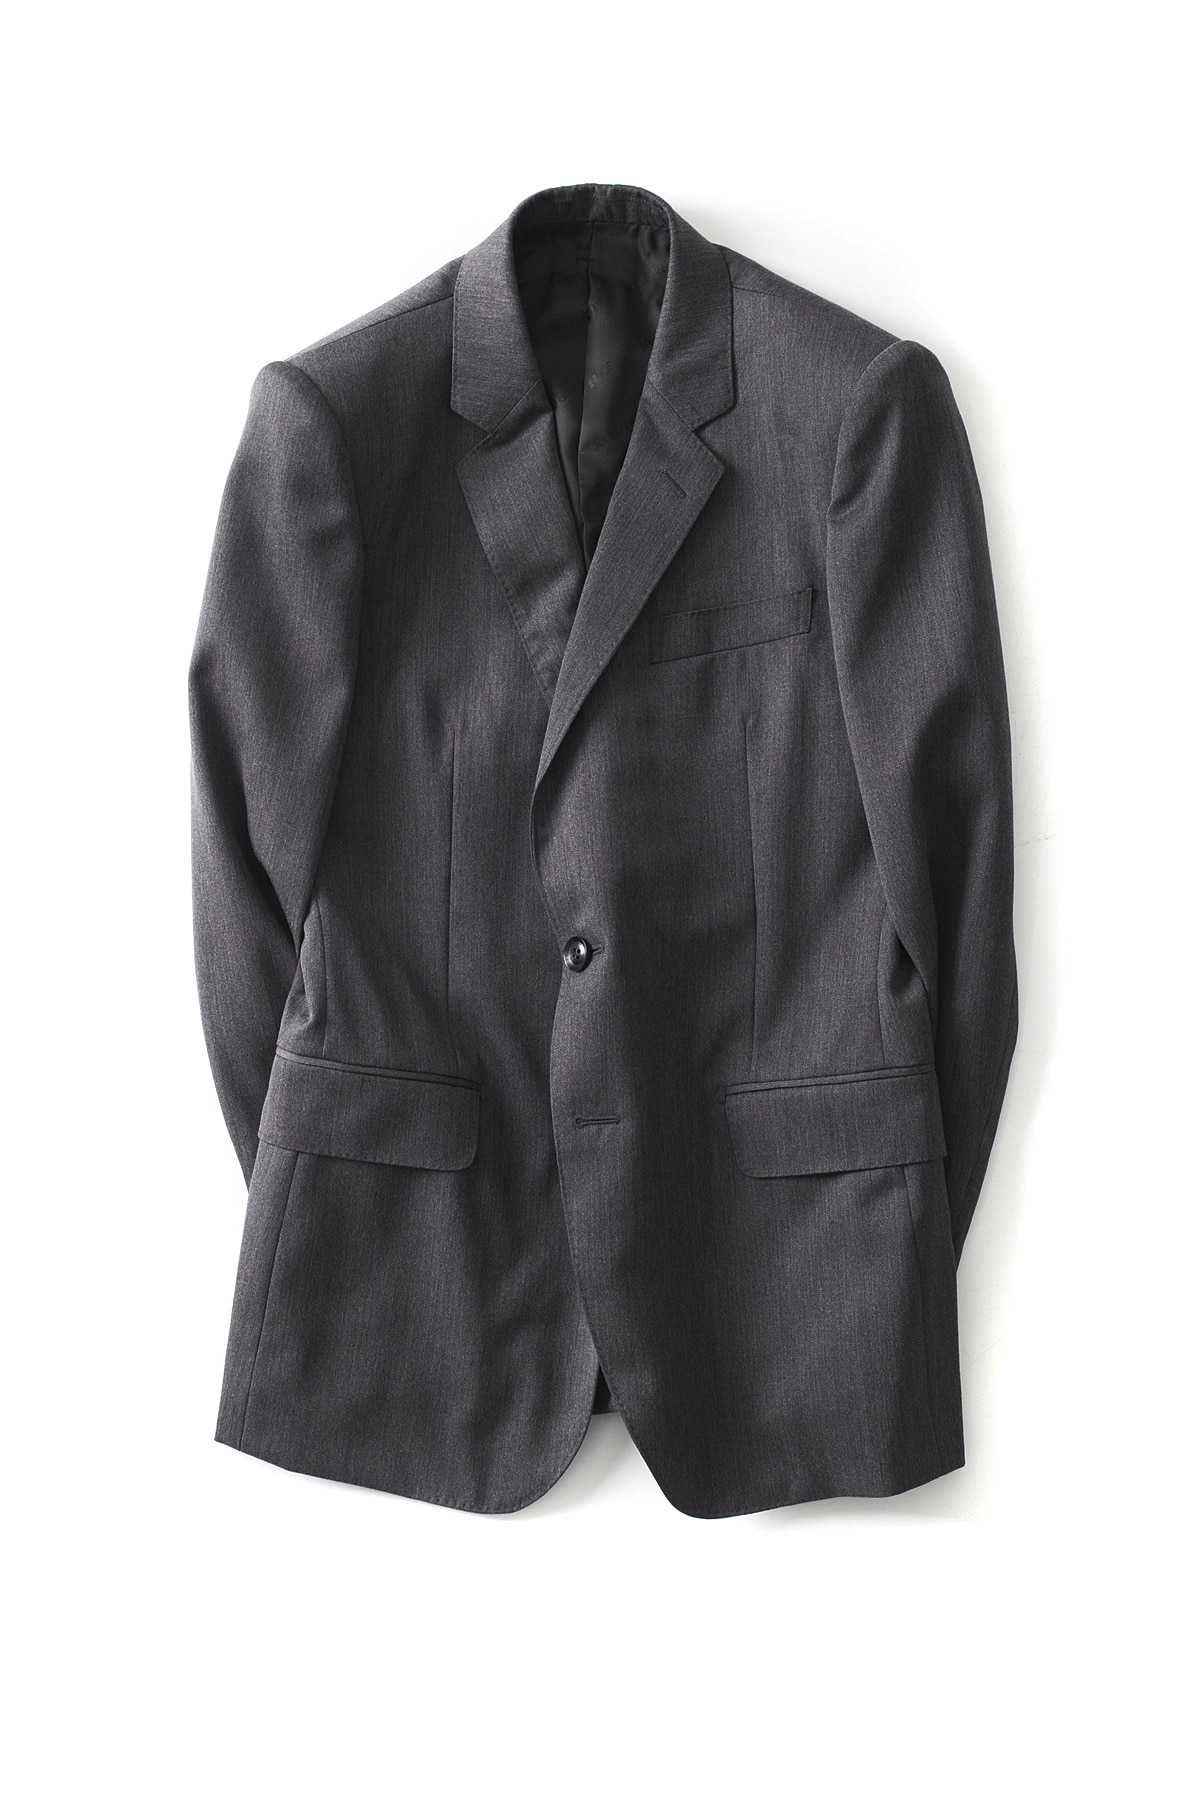 JOHN LAWRENCE SULLIVAN : Standard Jacket (Grey)